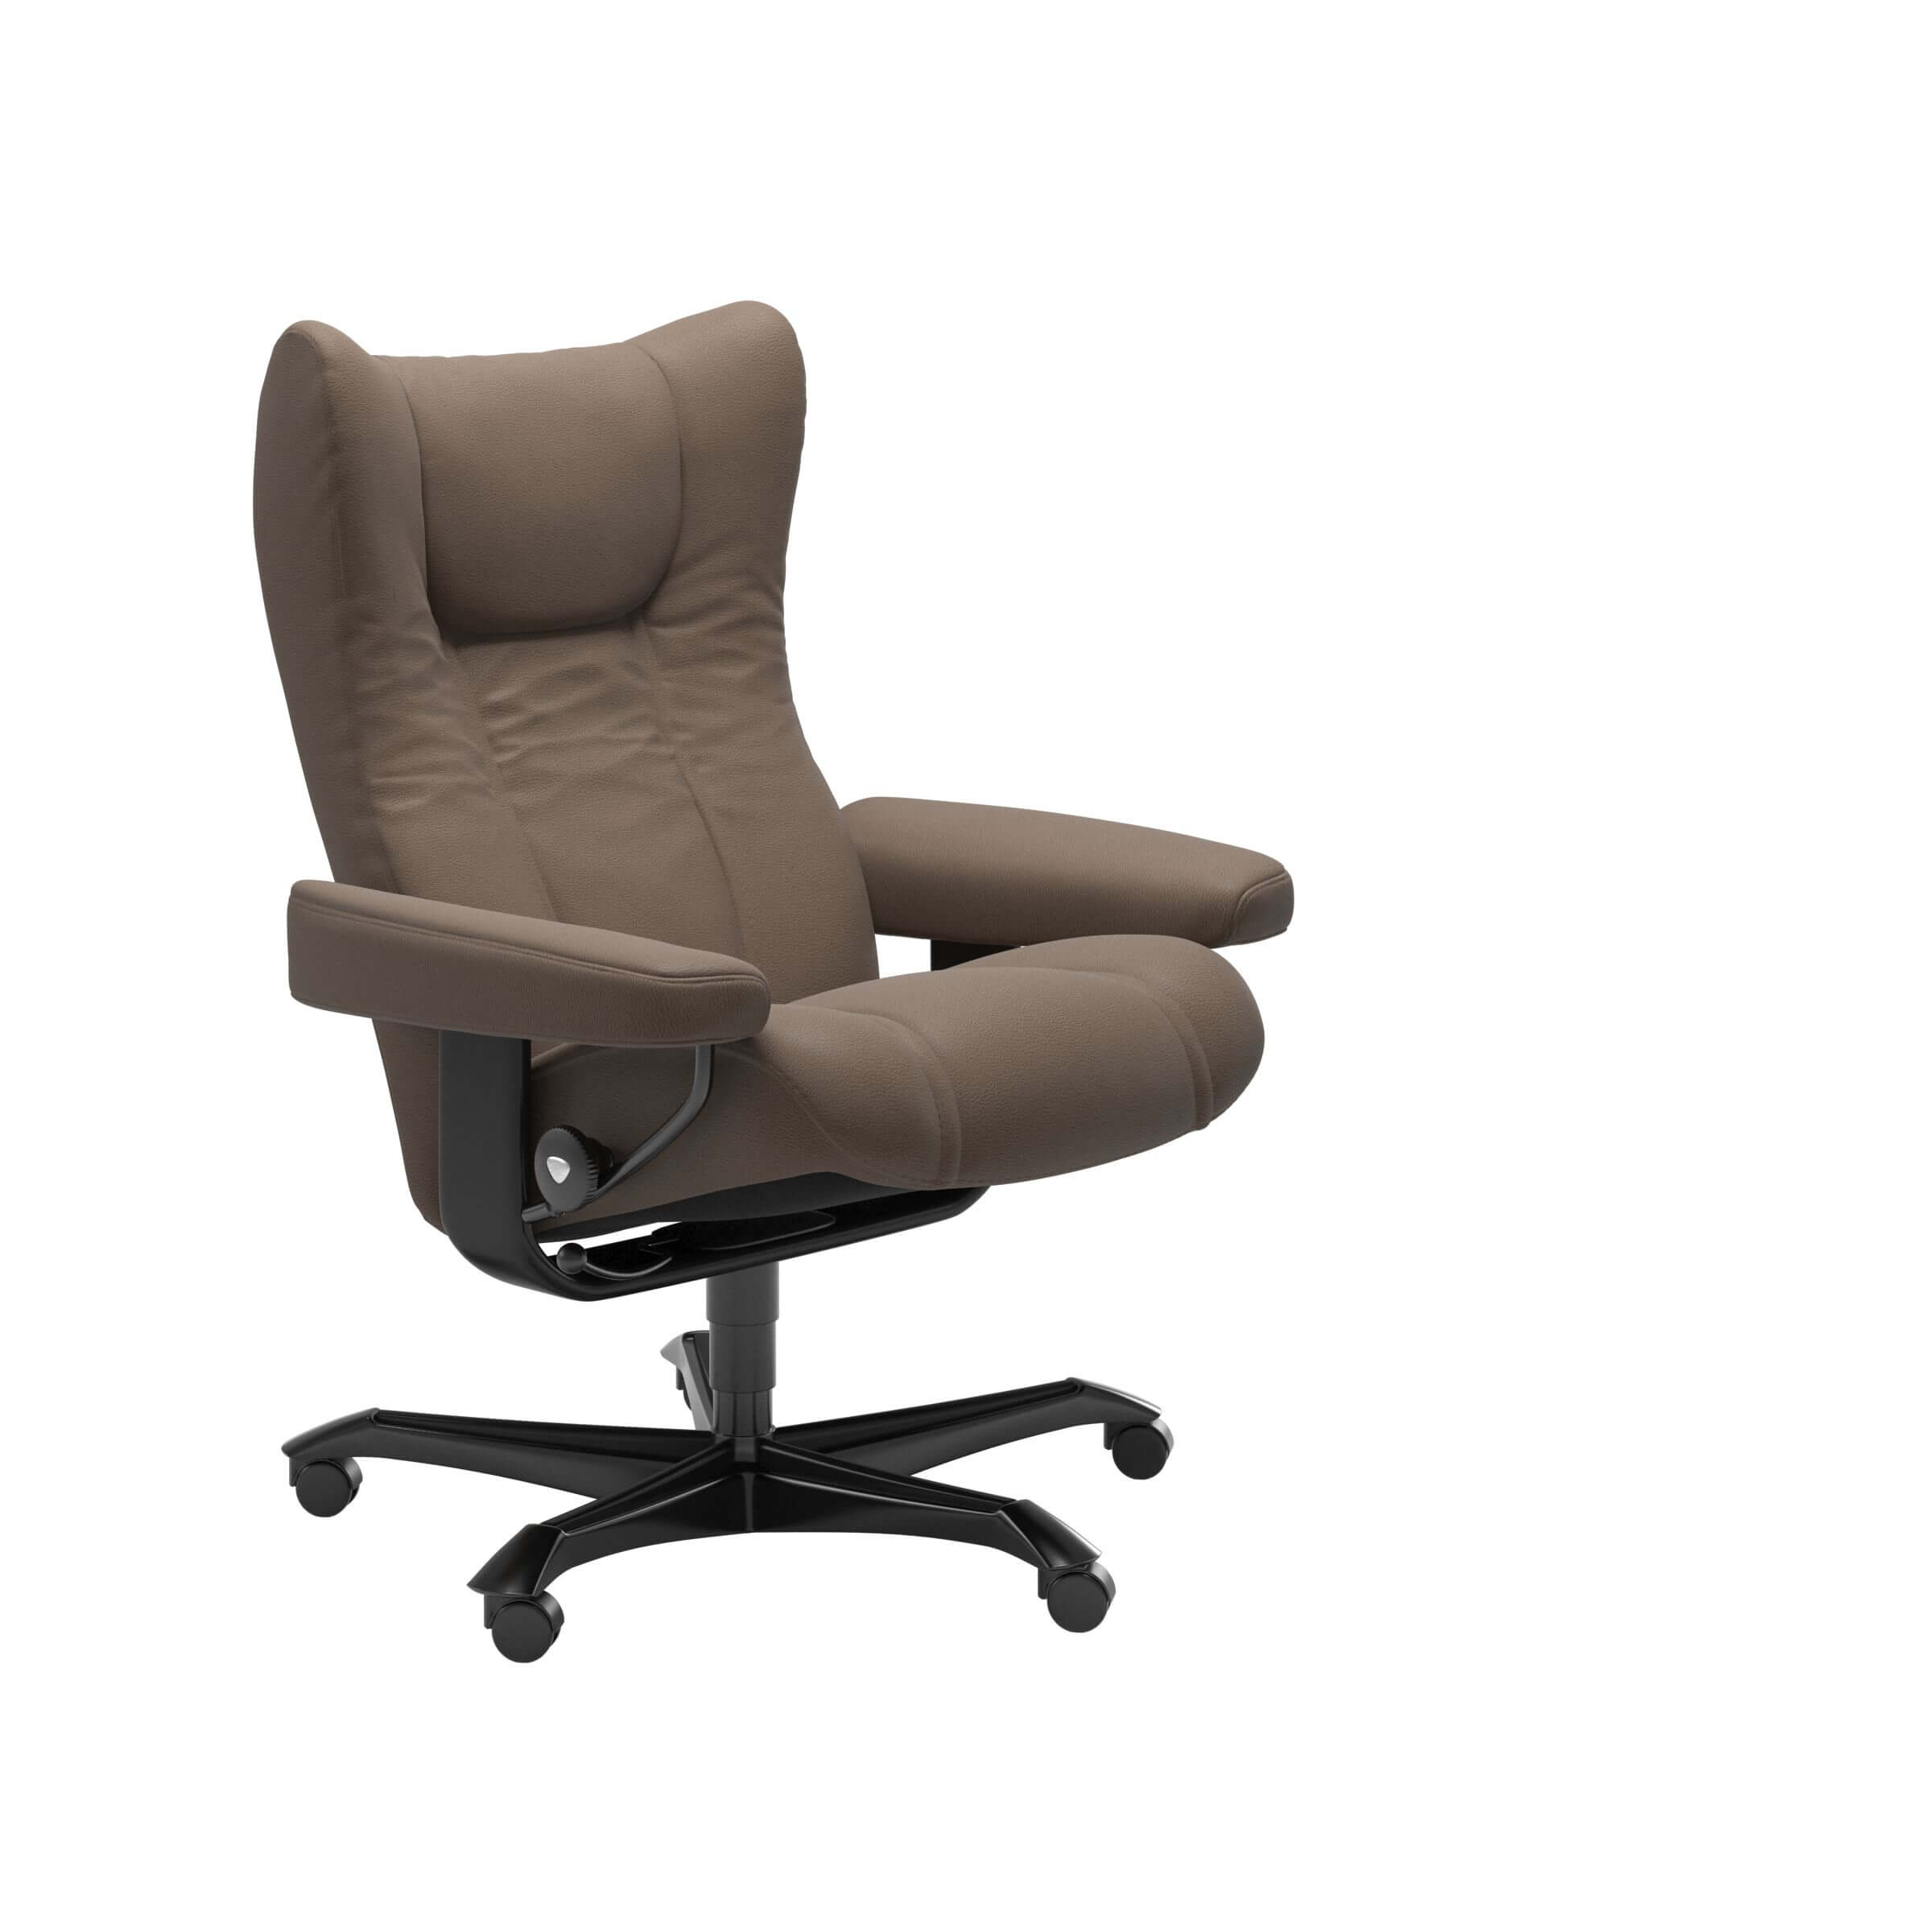 Stressless® Wing Office Chair Offer